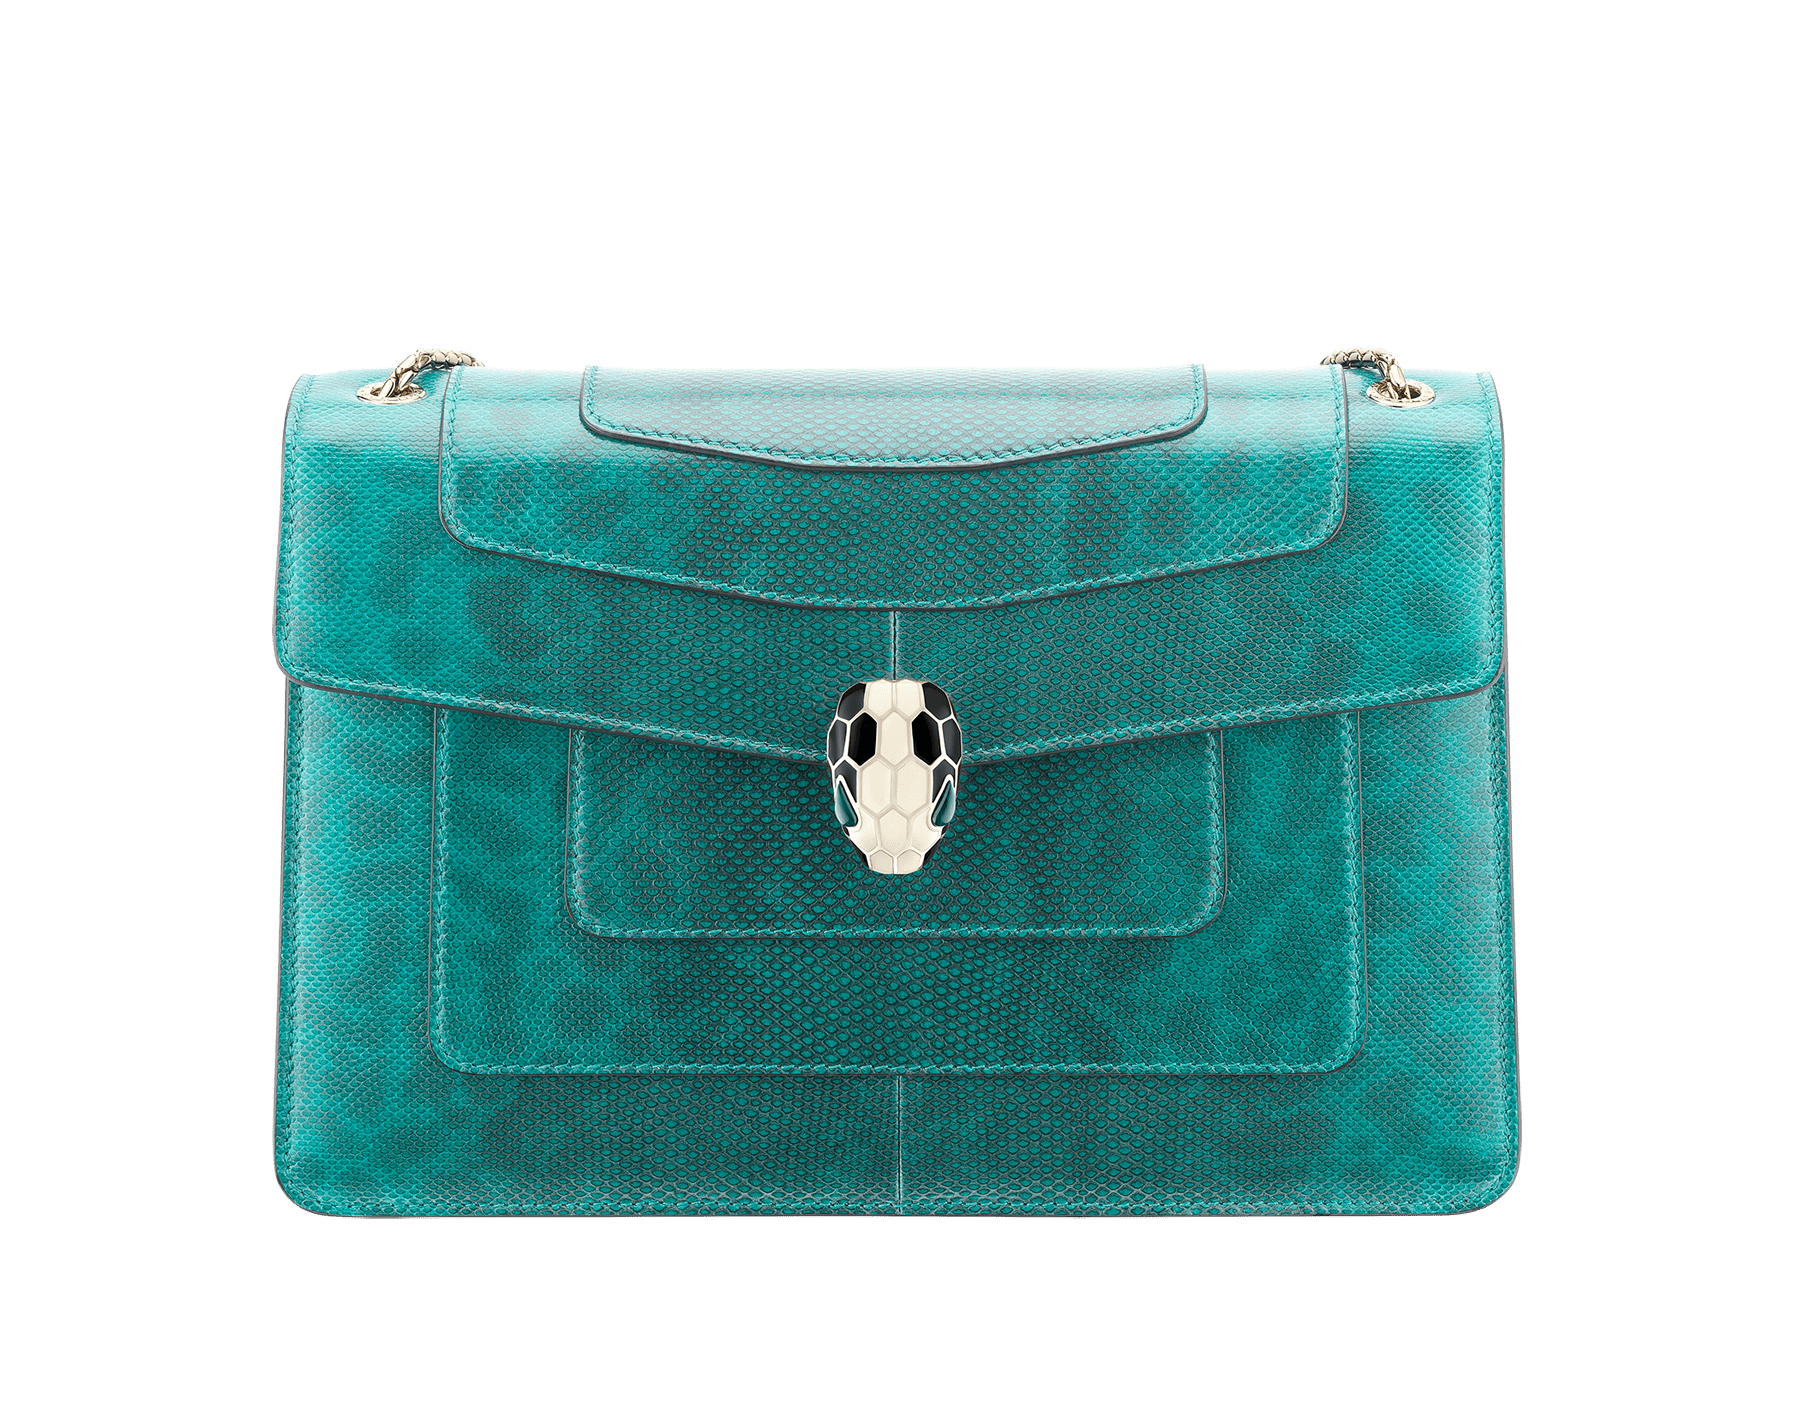 Serpenti Forever shoulder bag in tropical turquoise shiny karung skin. Snakehead closure in light gold plated brass decorated with black and white enamel, and green malachite eyes. 287917 image 1